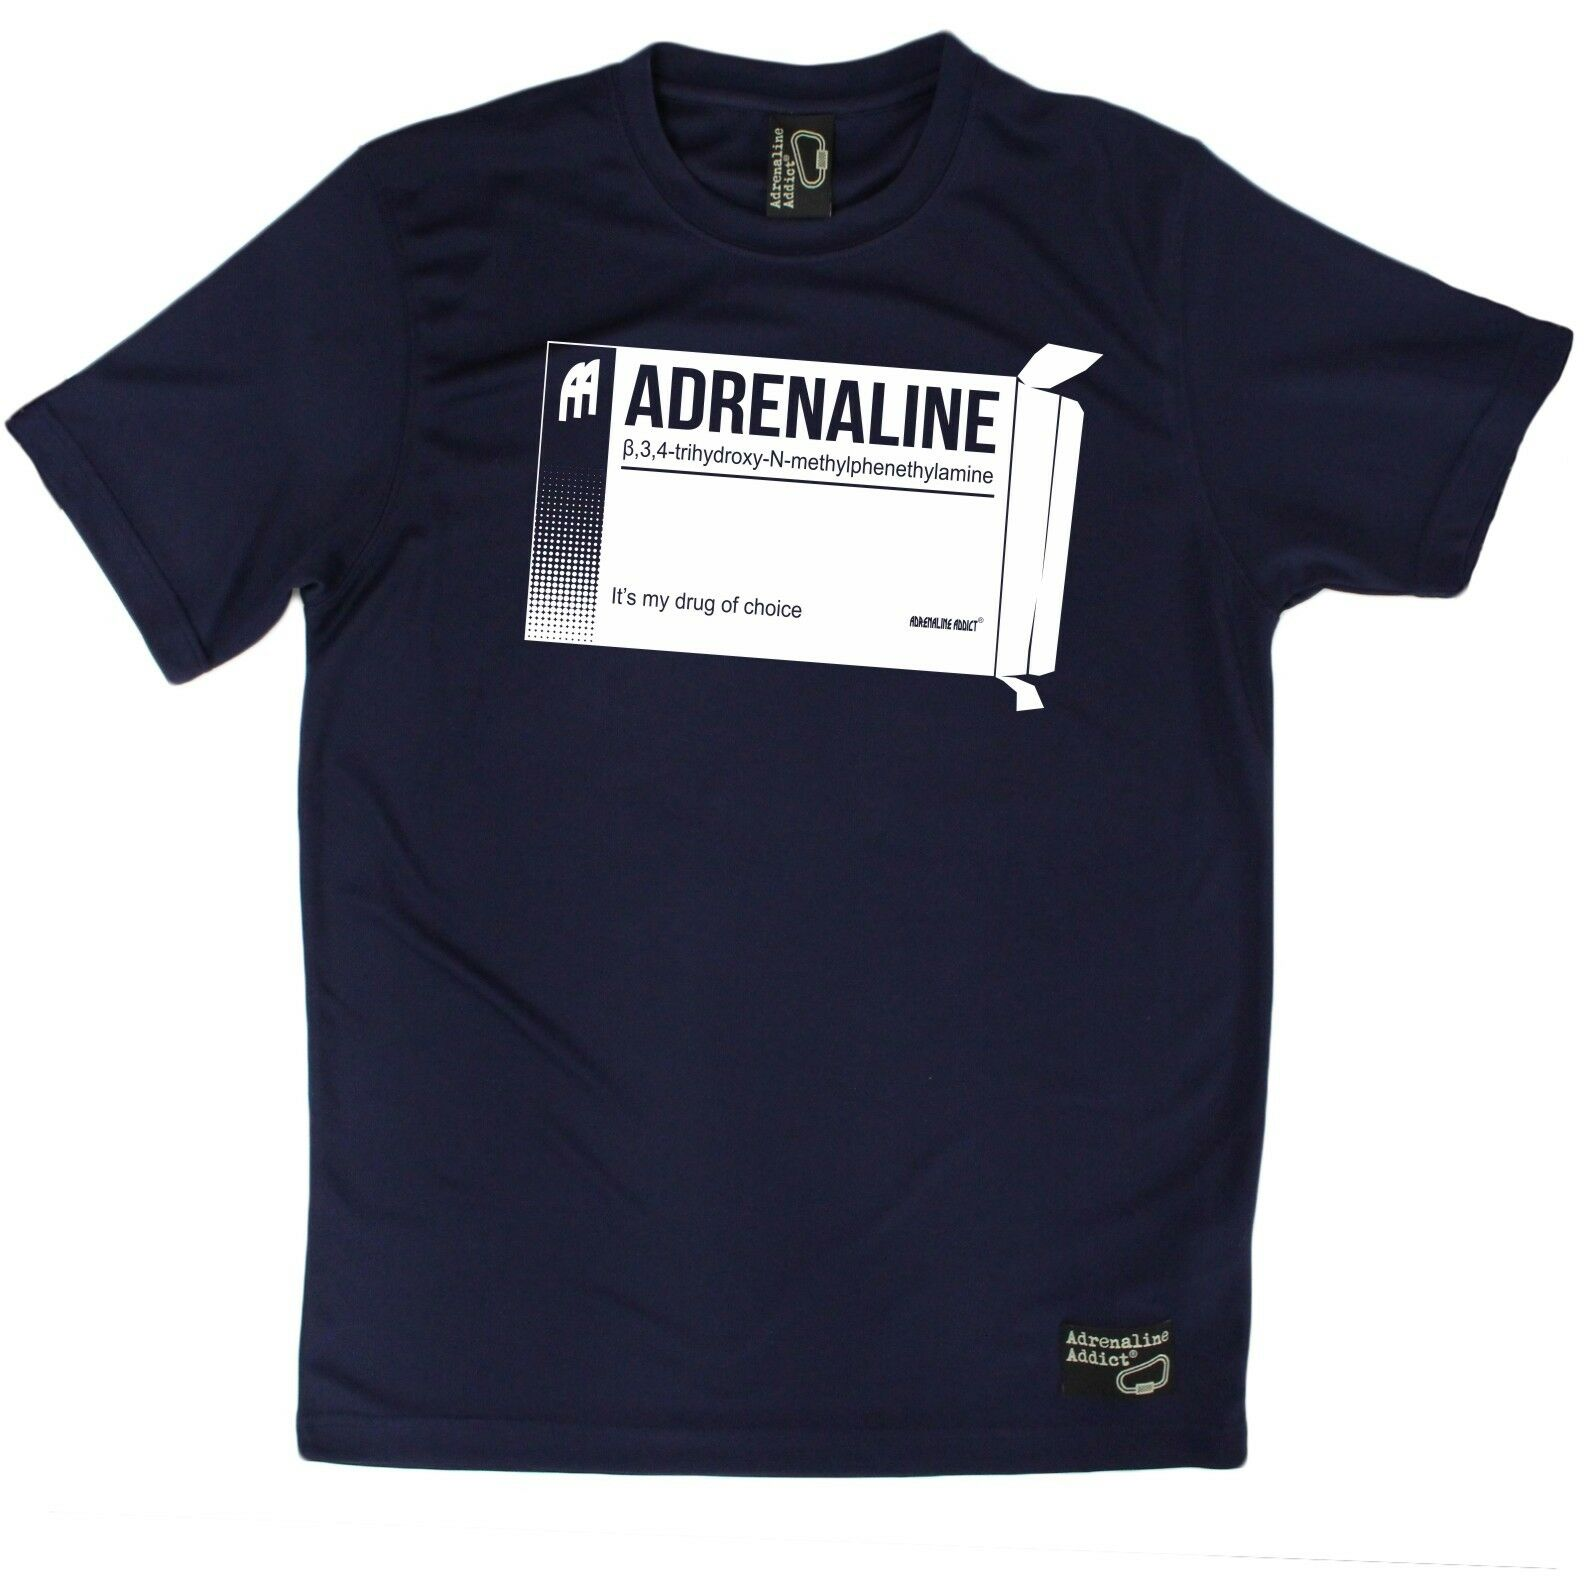 Men's Adrenaline Drug Of Choice Breathable Sports T-SHIRT